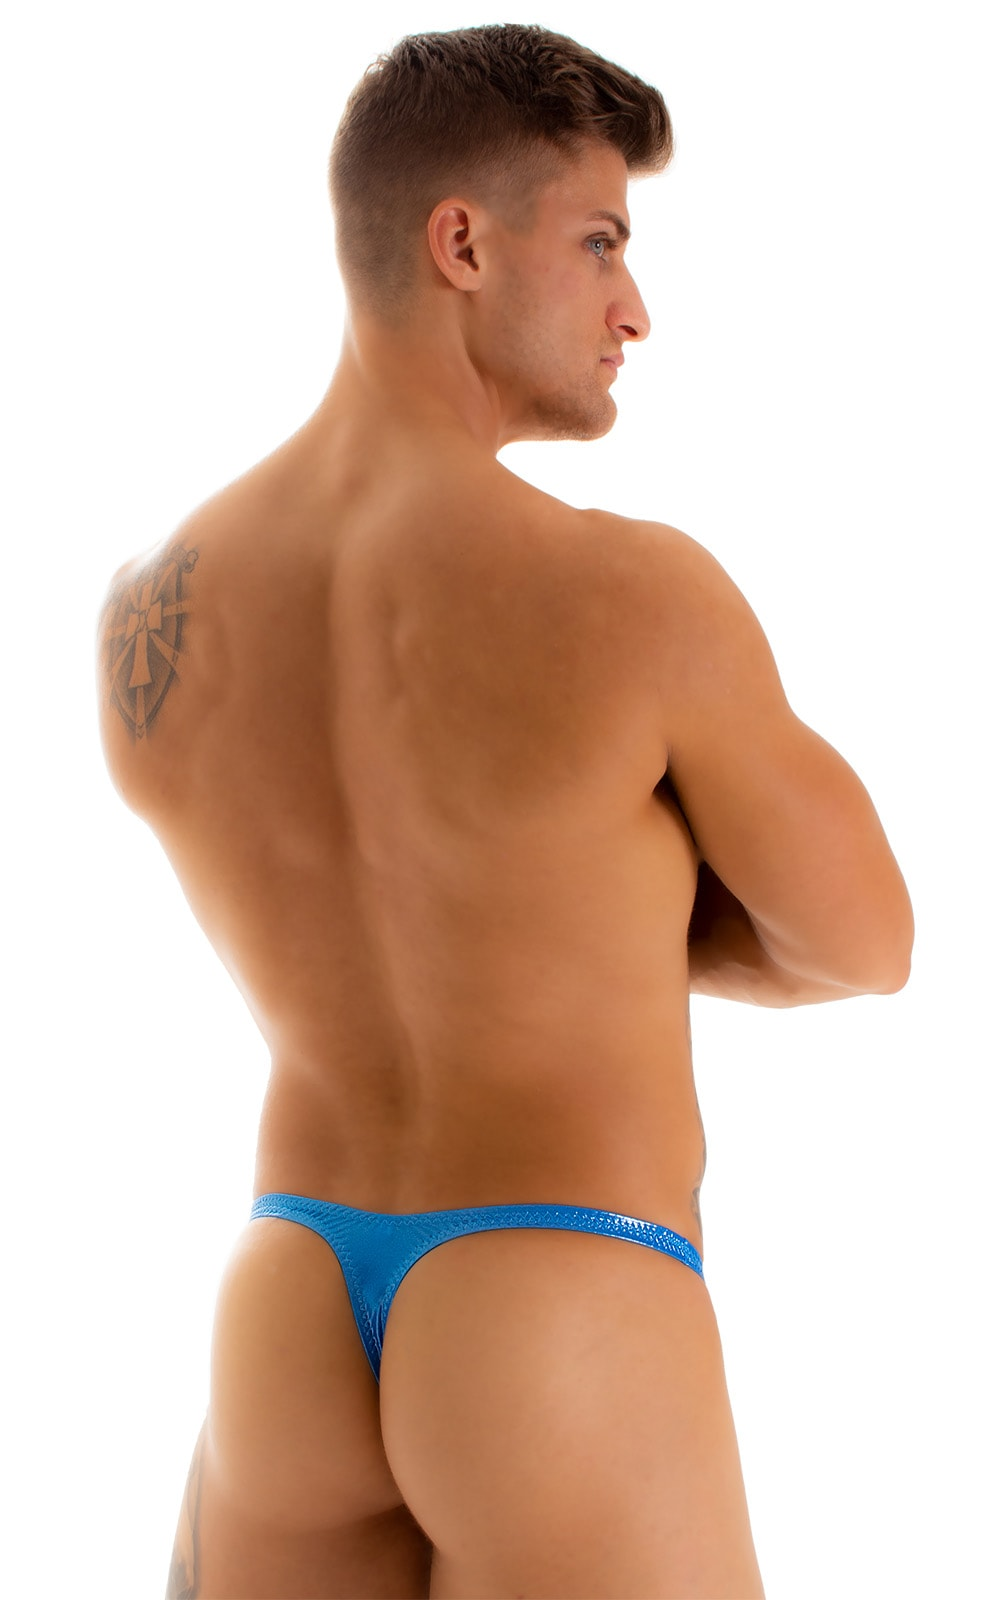 Stuffit Pouch Thong in Ice Karma Electric Blue 2